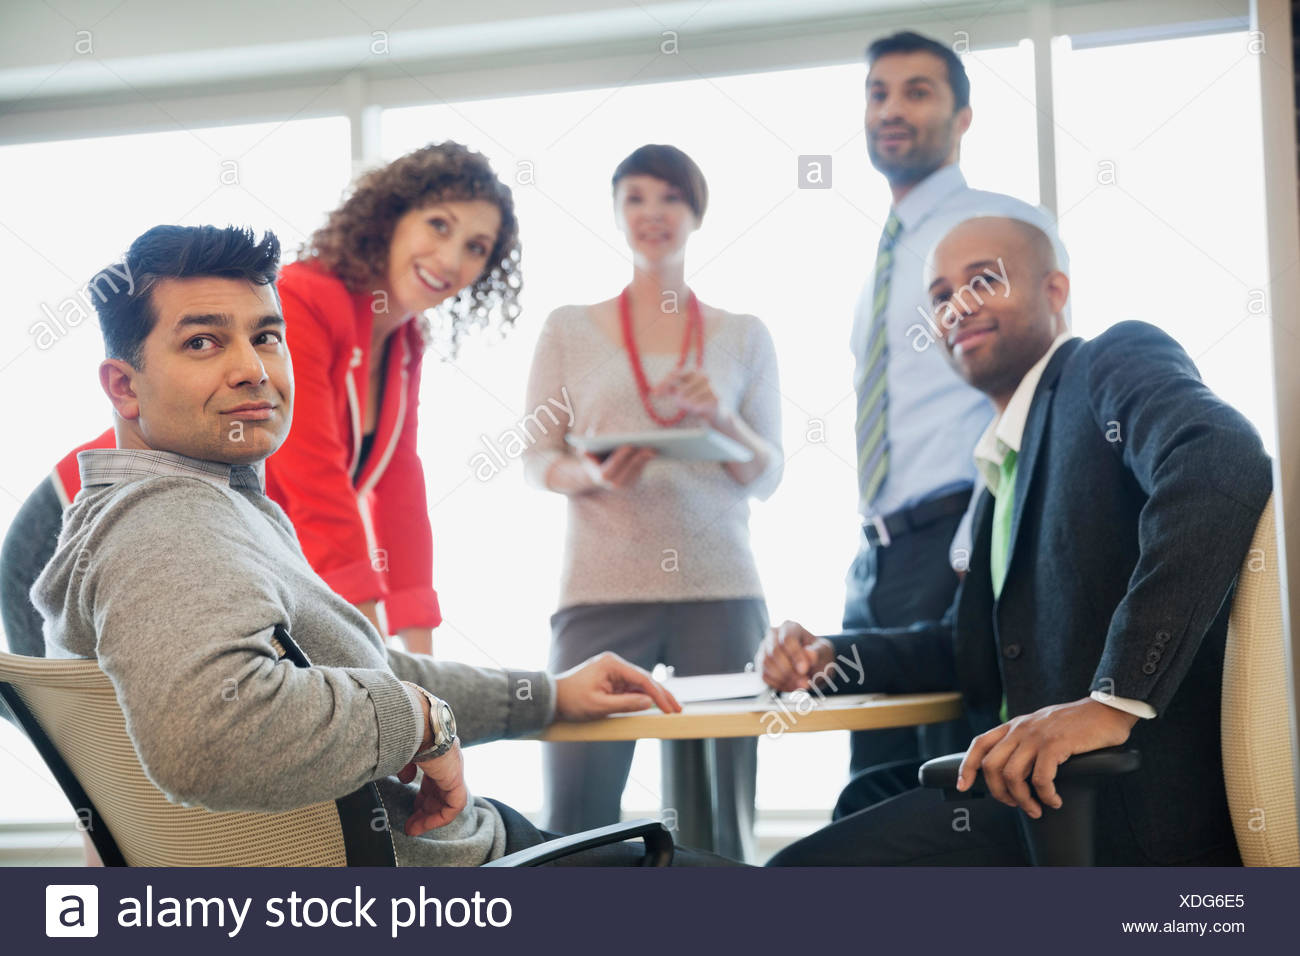 Business people looking away during meeting at table in office Stock Photo